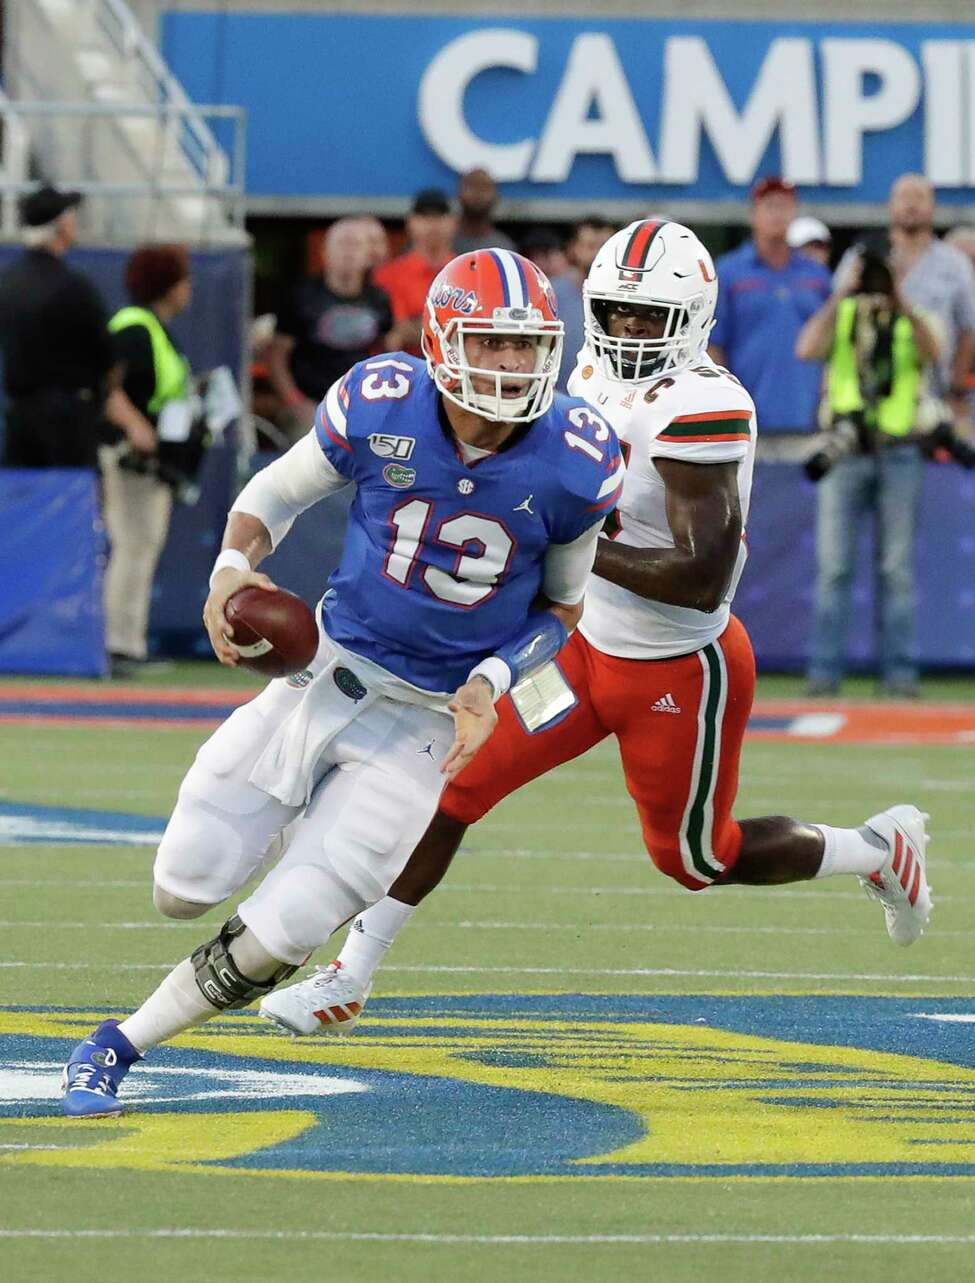 Florida quarterback Feleipe Franks (13) scrambles as he is pressured by Miami linebacker Shaquille Quarterman, right, during the first half of an NCAA college football game Saturday, Aug. 24, 2019, in Orlando, Fla. (AP Photo/John Raoux)